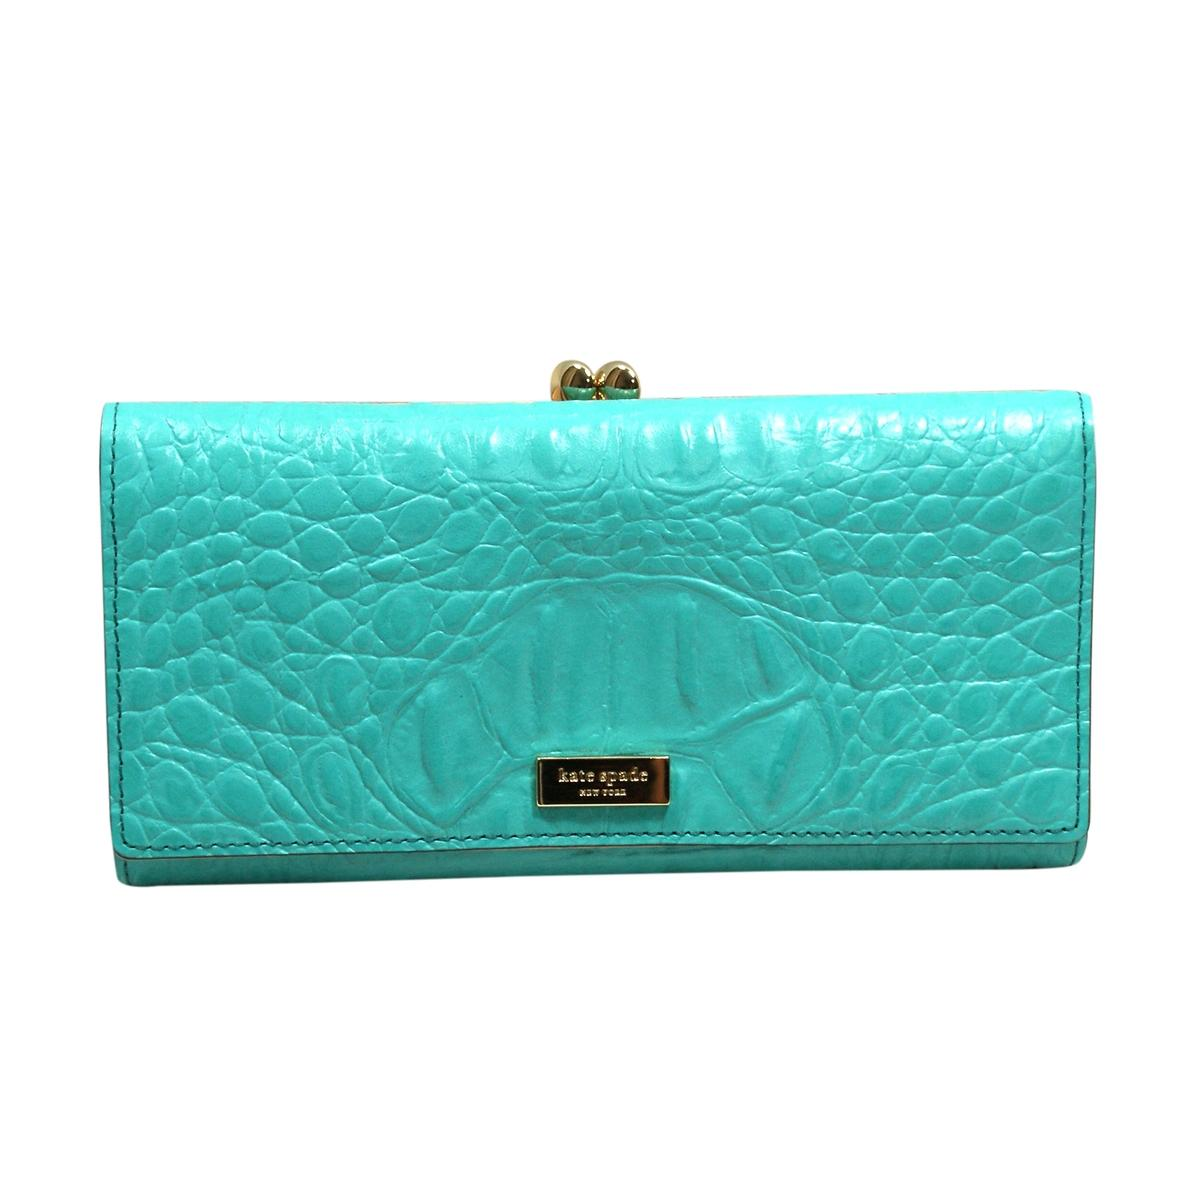 Kate Spade Claudette Orchard Valley Chic Turquoise Croc